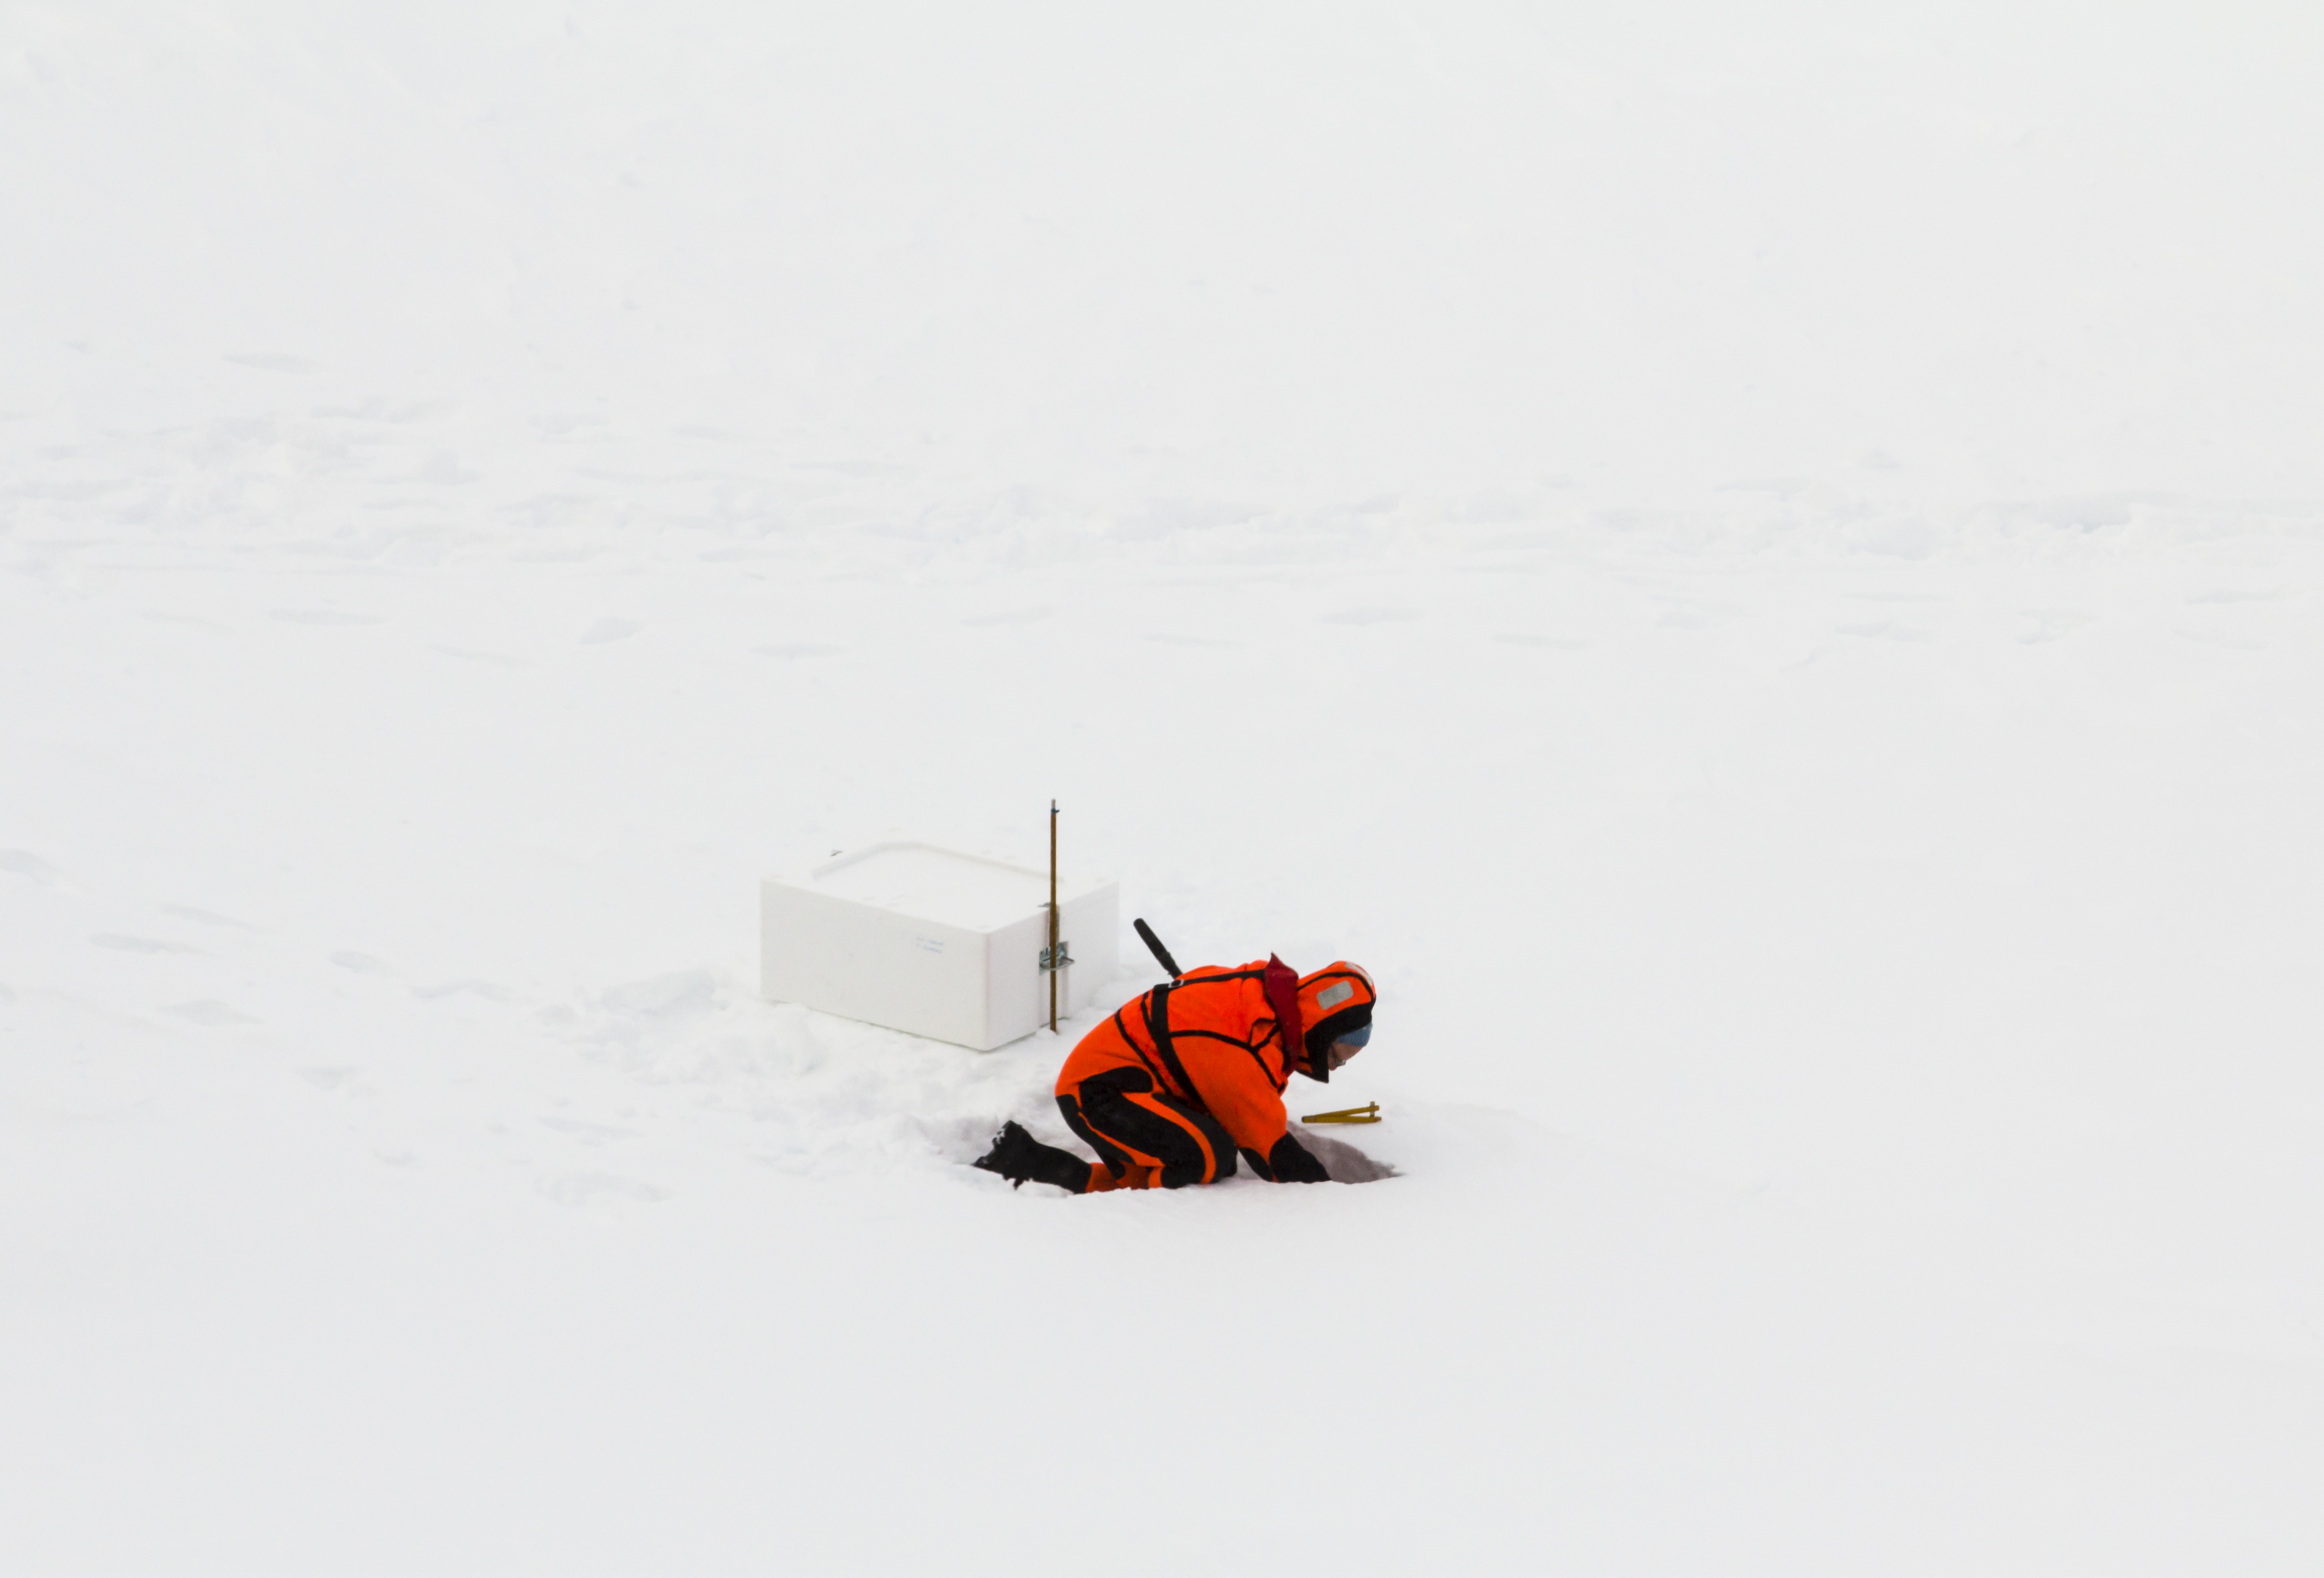 processing Antarctic ice core samples